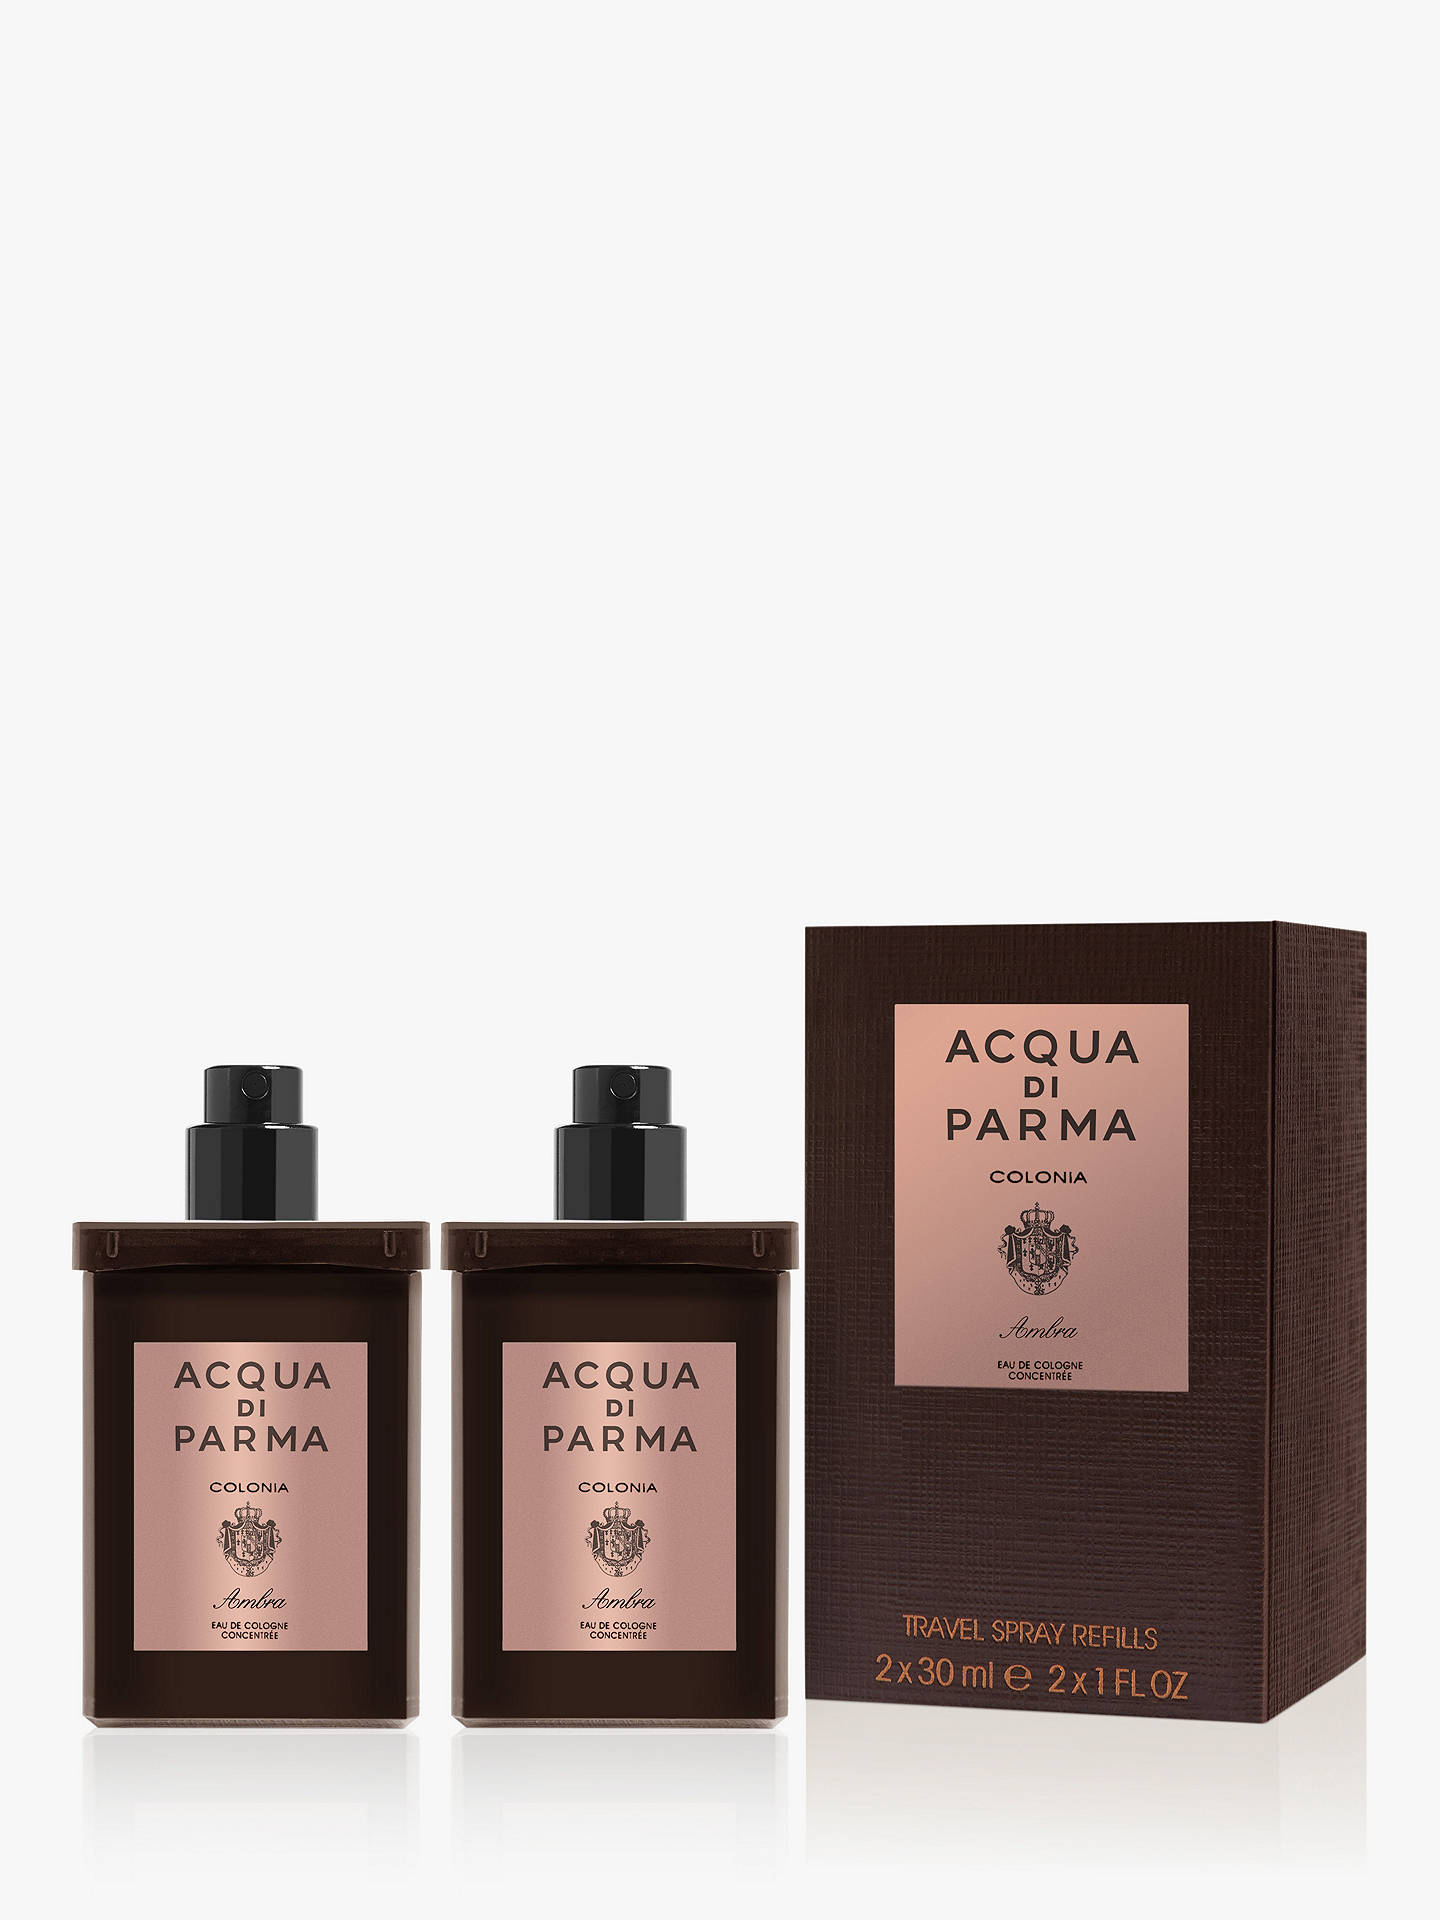 BuyAcqua di Parma Colonia Ambra Eau de Cologne Concentrée Travel Refill Spray, 2 x 30ml Online at johnlewis.com